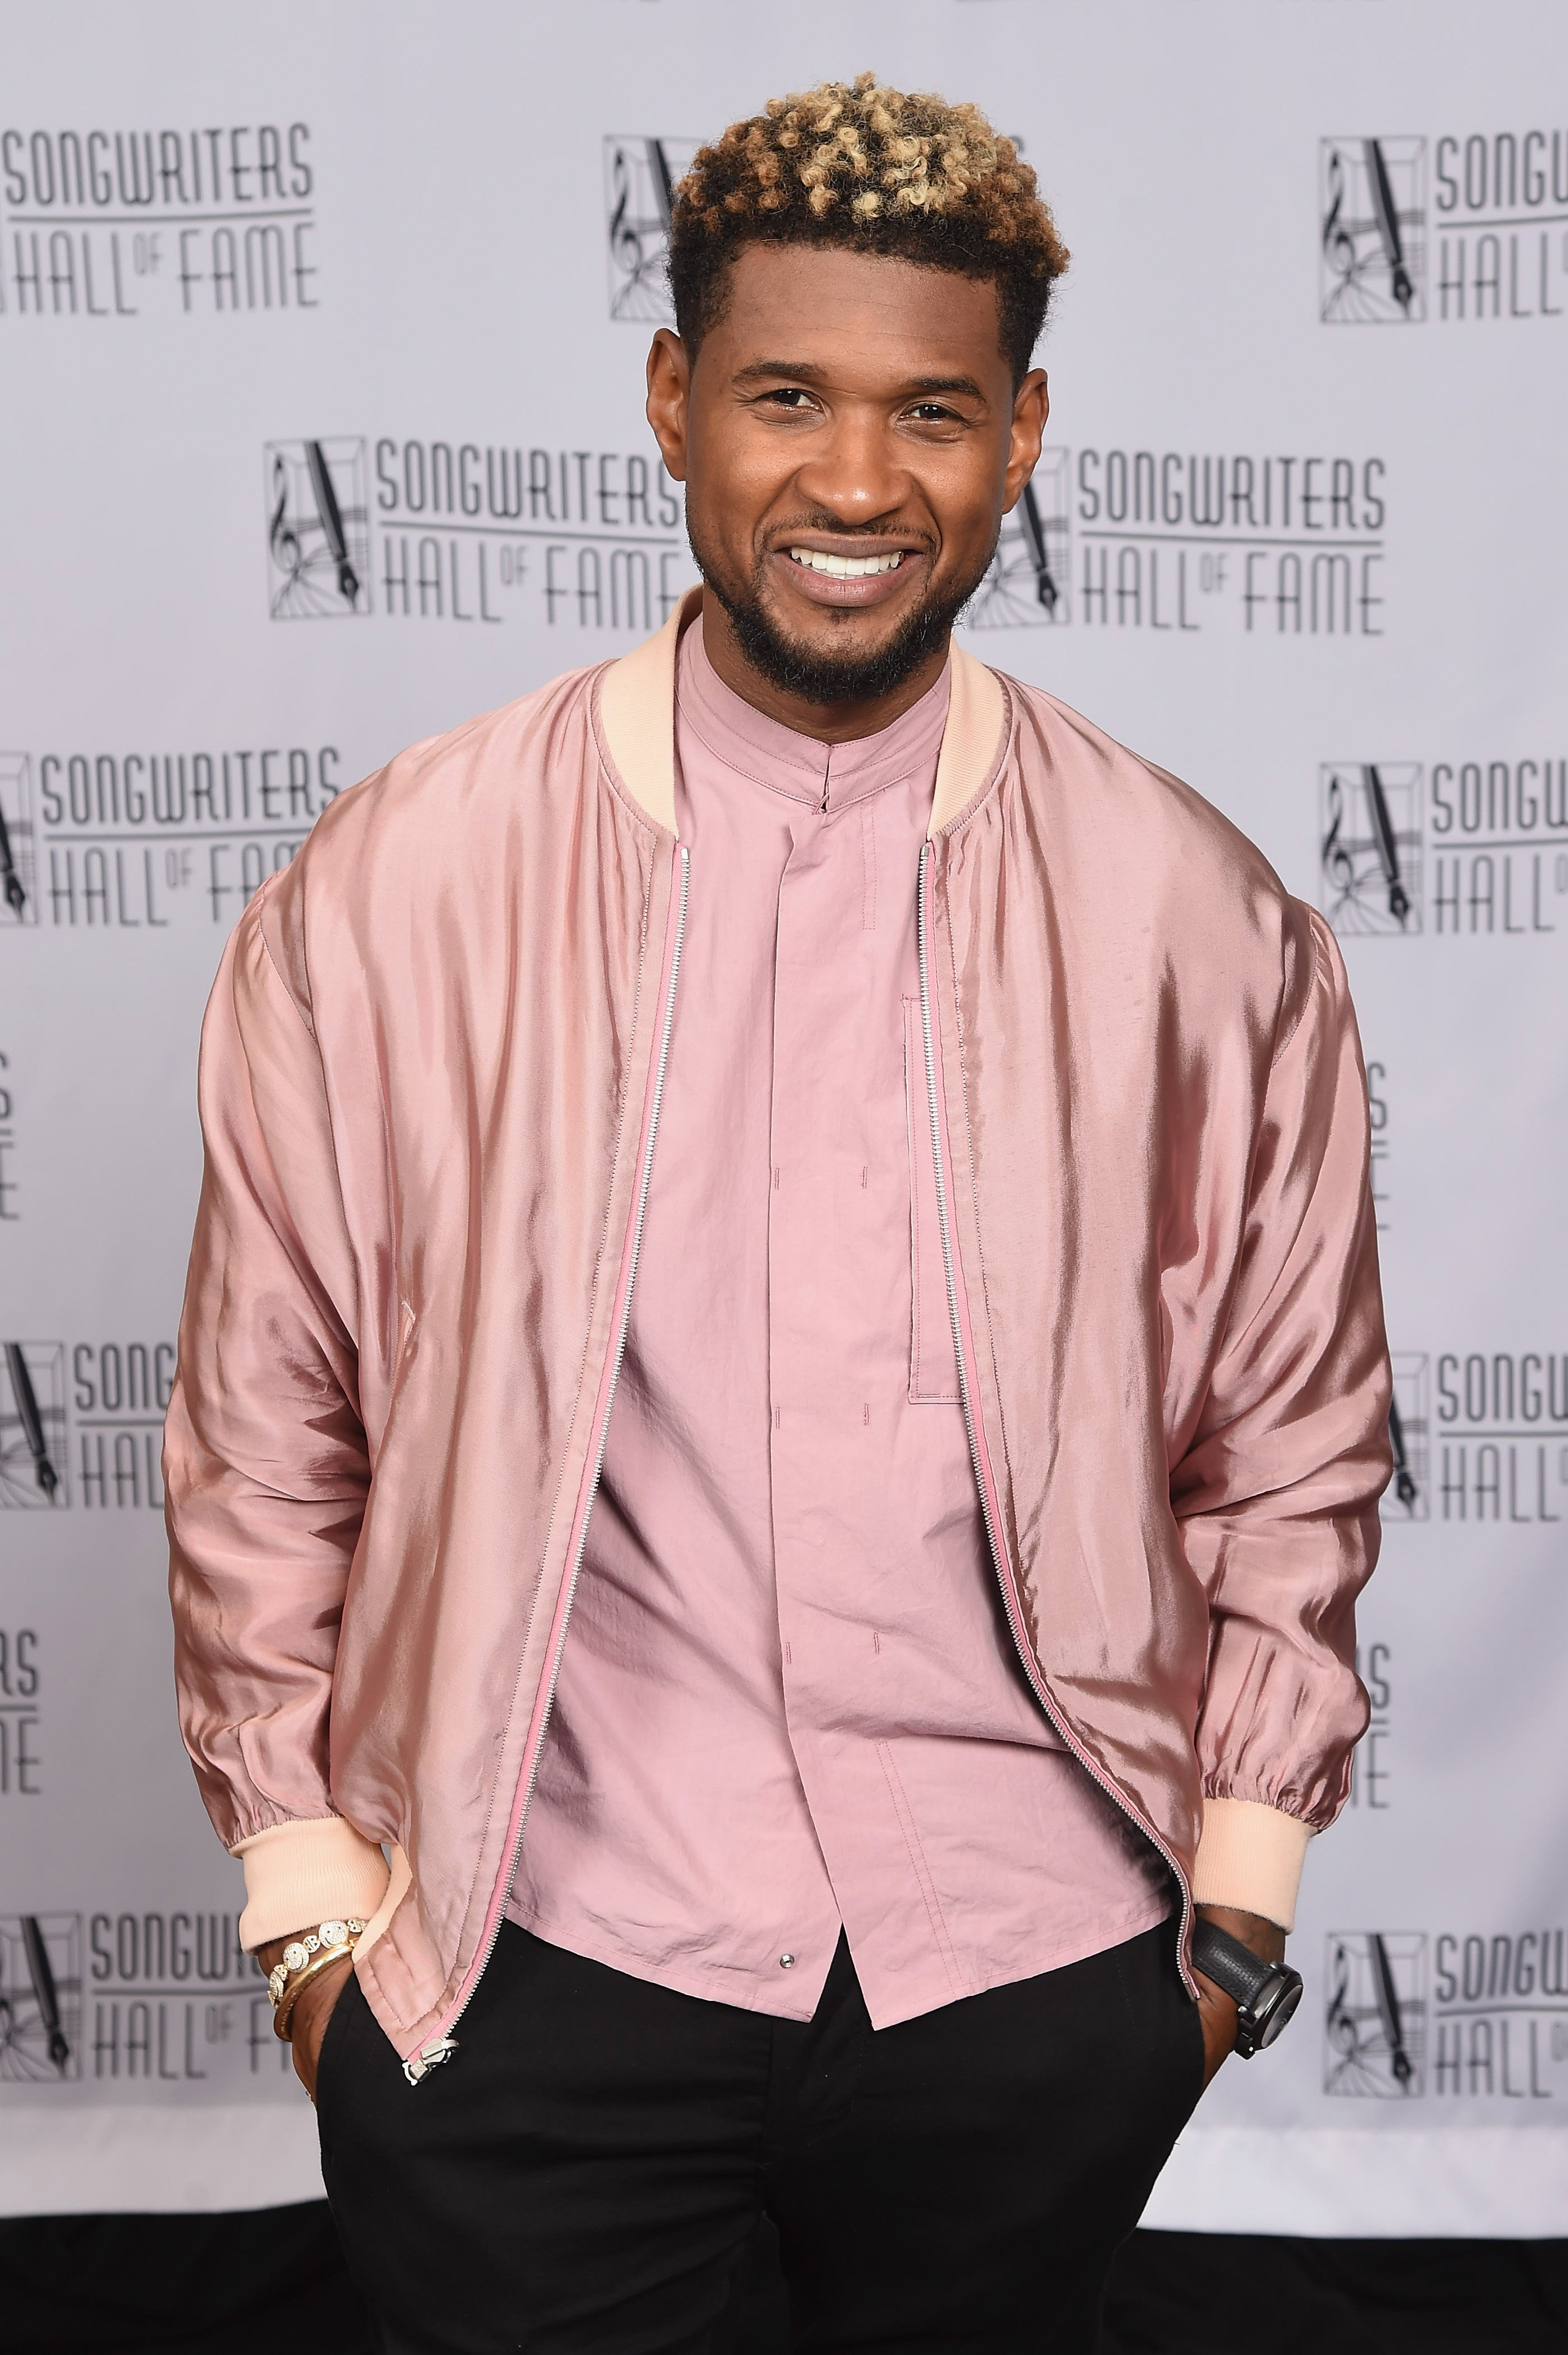 Usher posing backstage at the Songwriters Hall of Fame induction in June 2017.   Photo: Getty Images